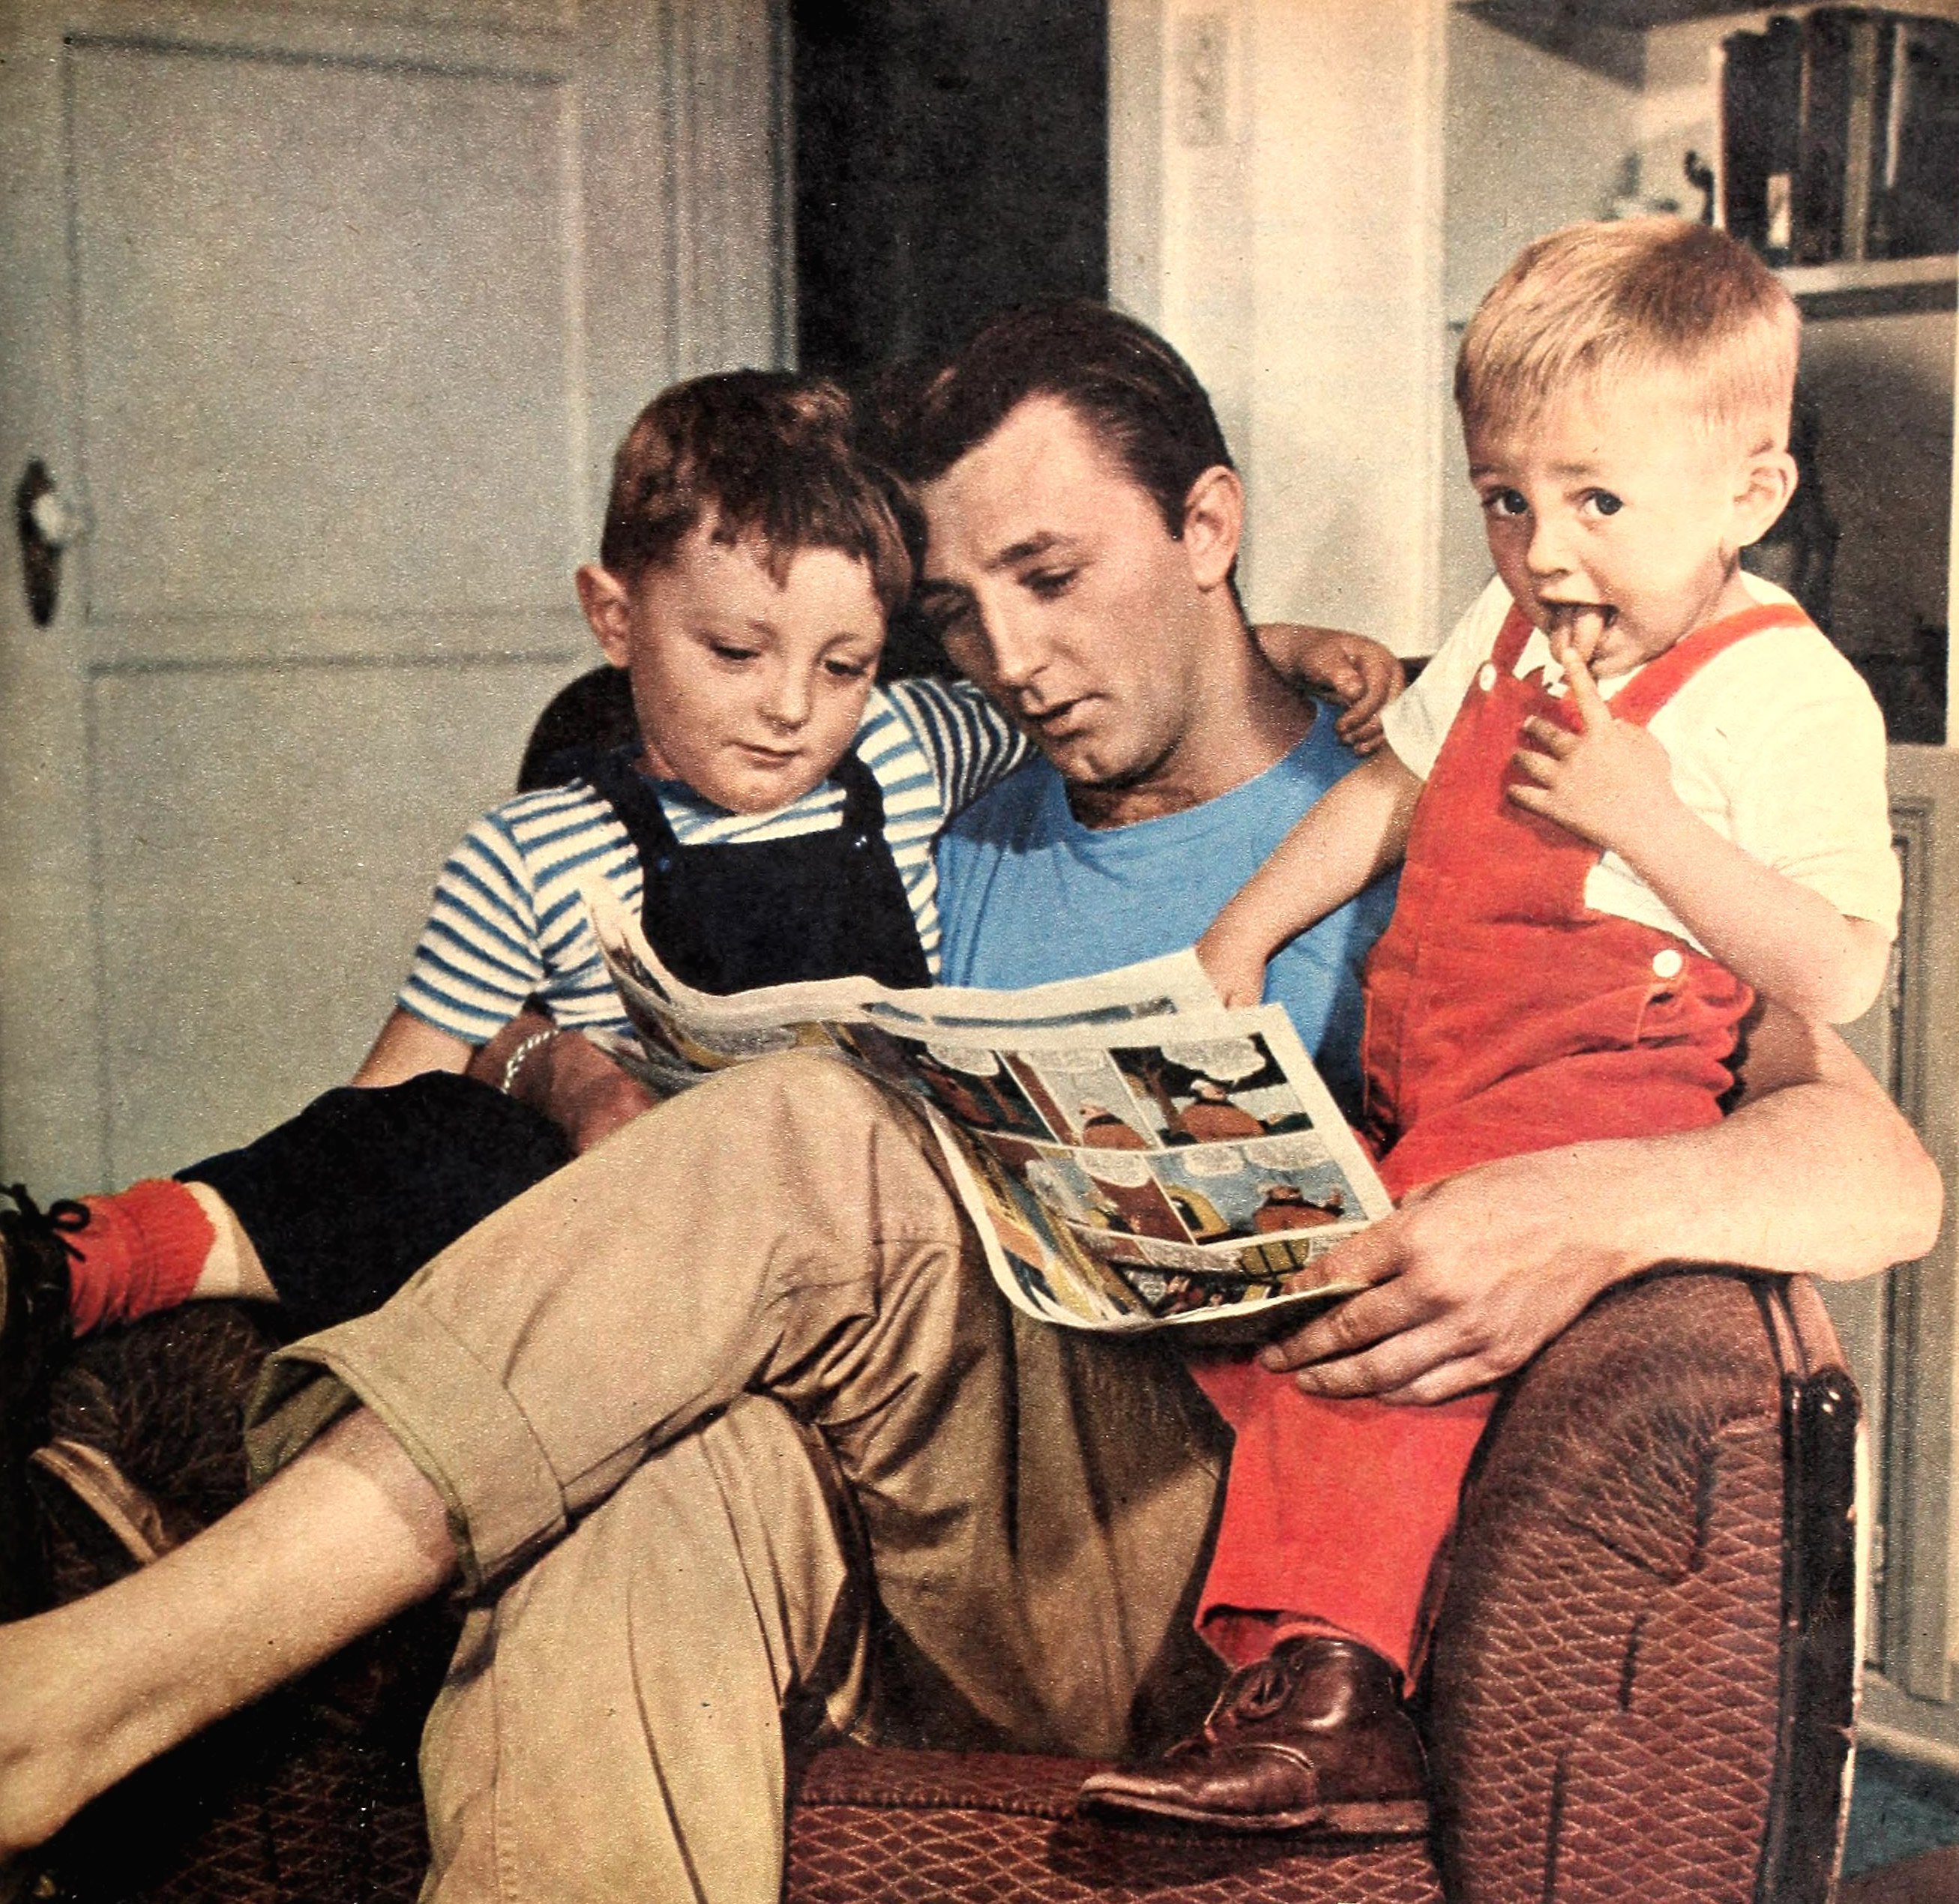 Image Source: Wikimedia Commons/Robert Mitchum and his sons